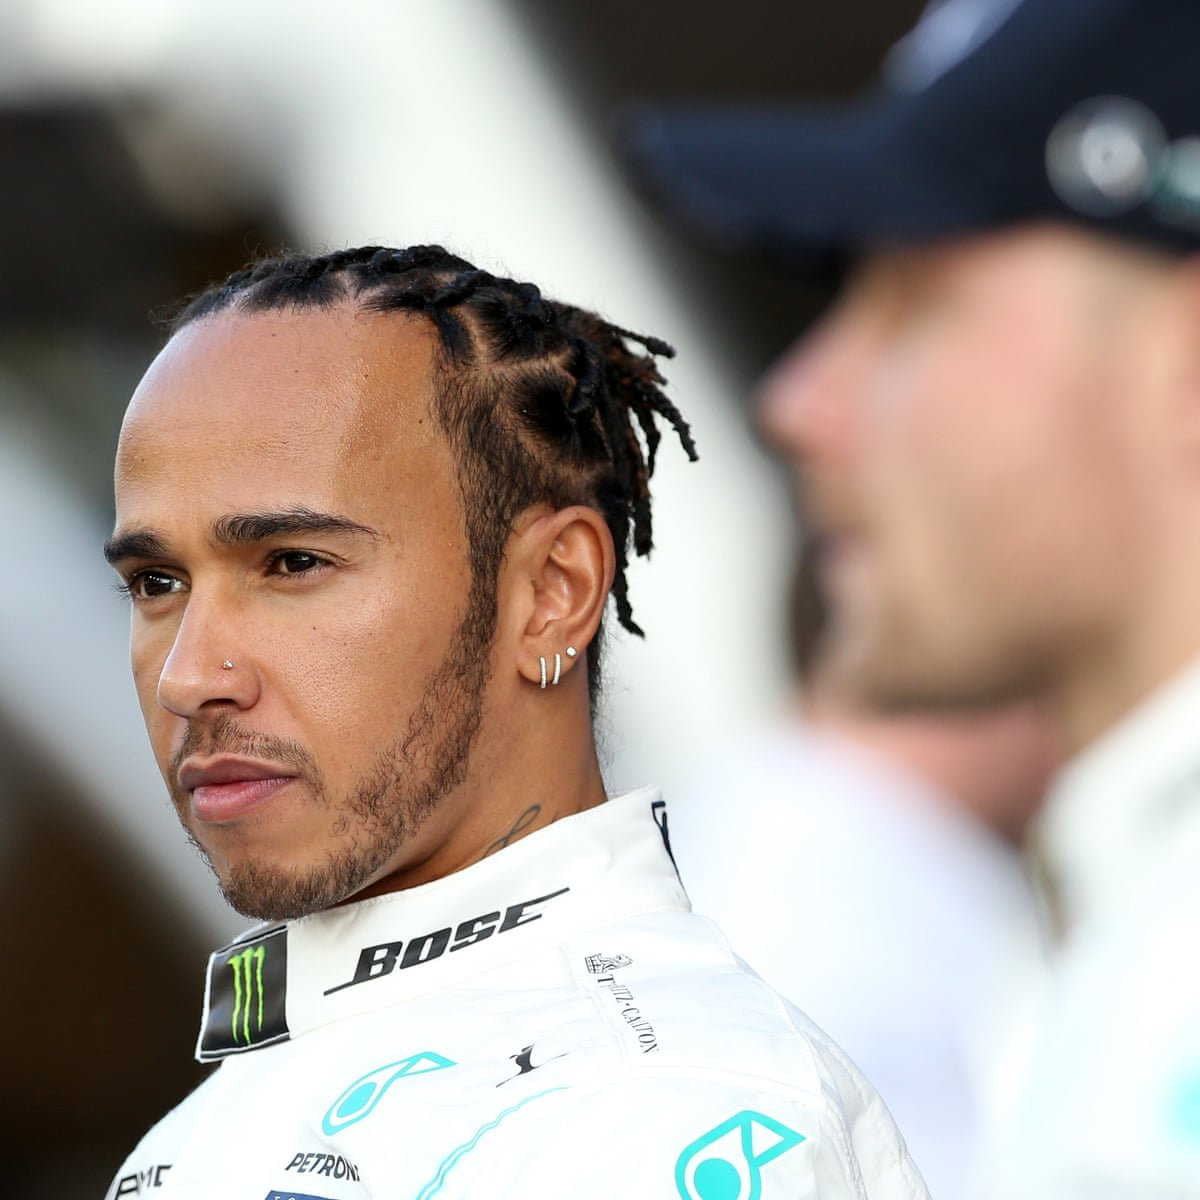 Lewis Hamilton Under Investigation for Two Incidents During Austrian GP Qualifying - Essentially Sports